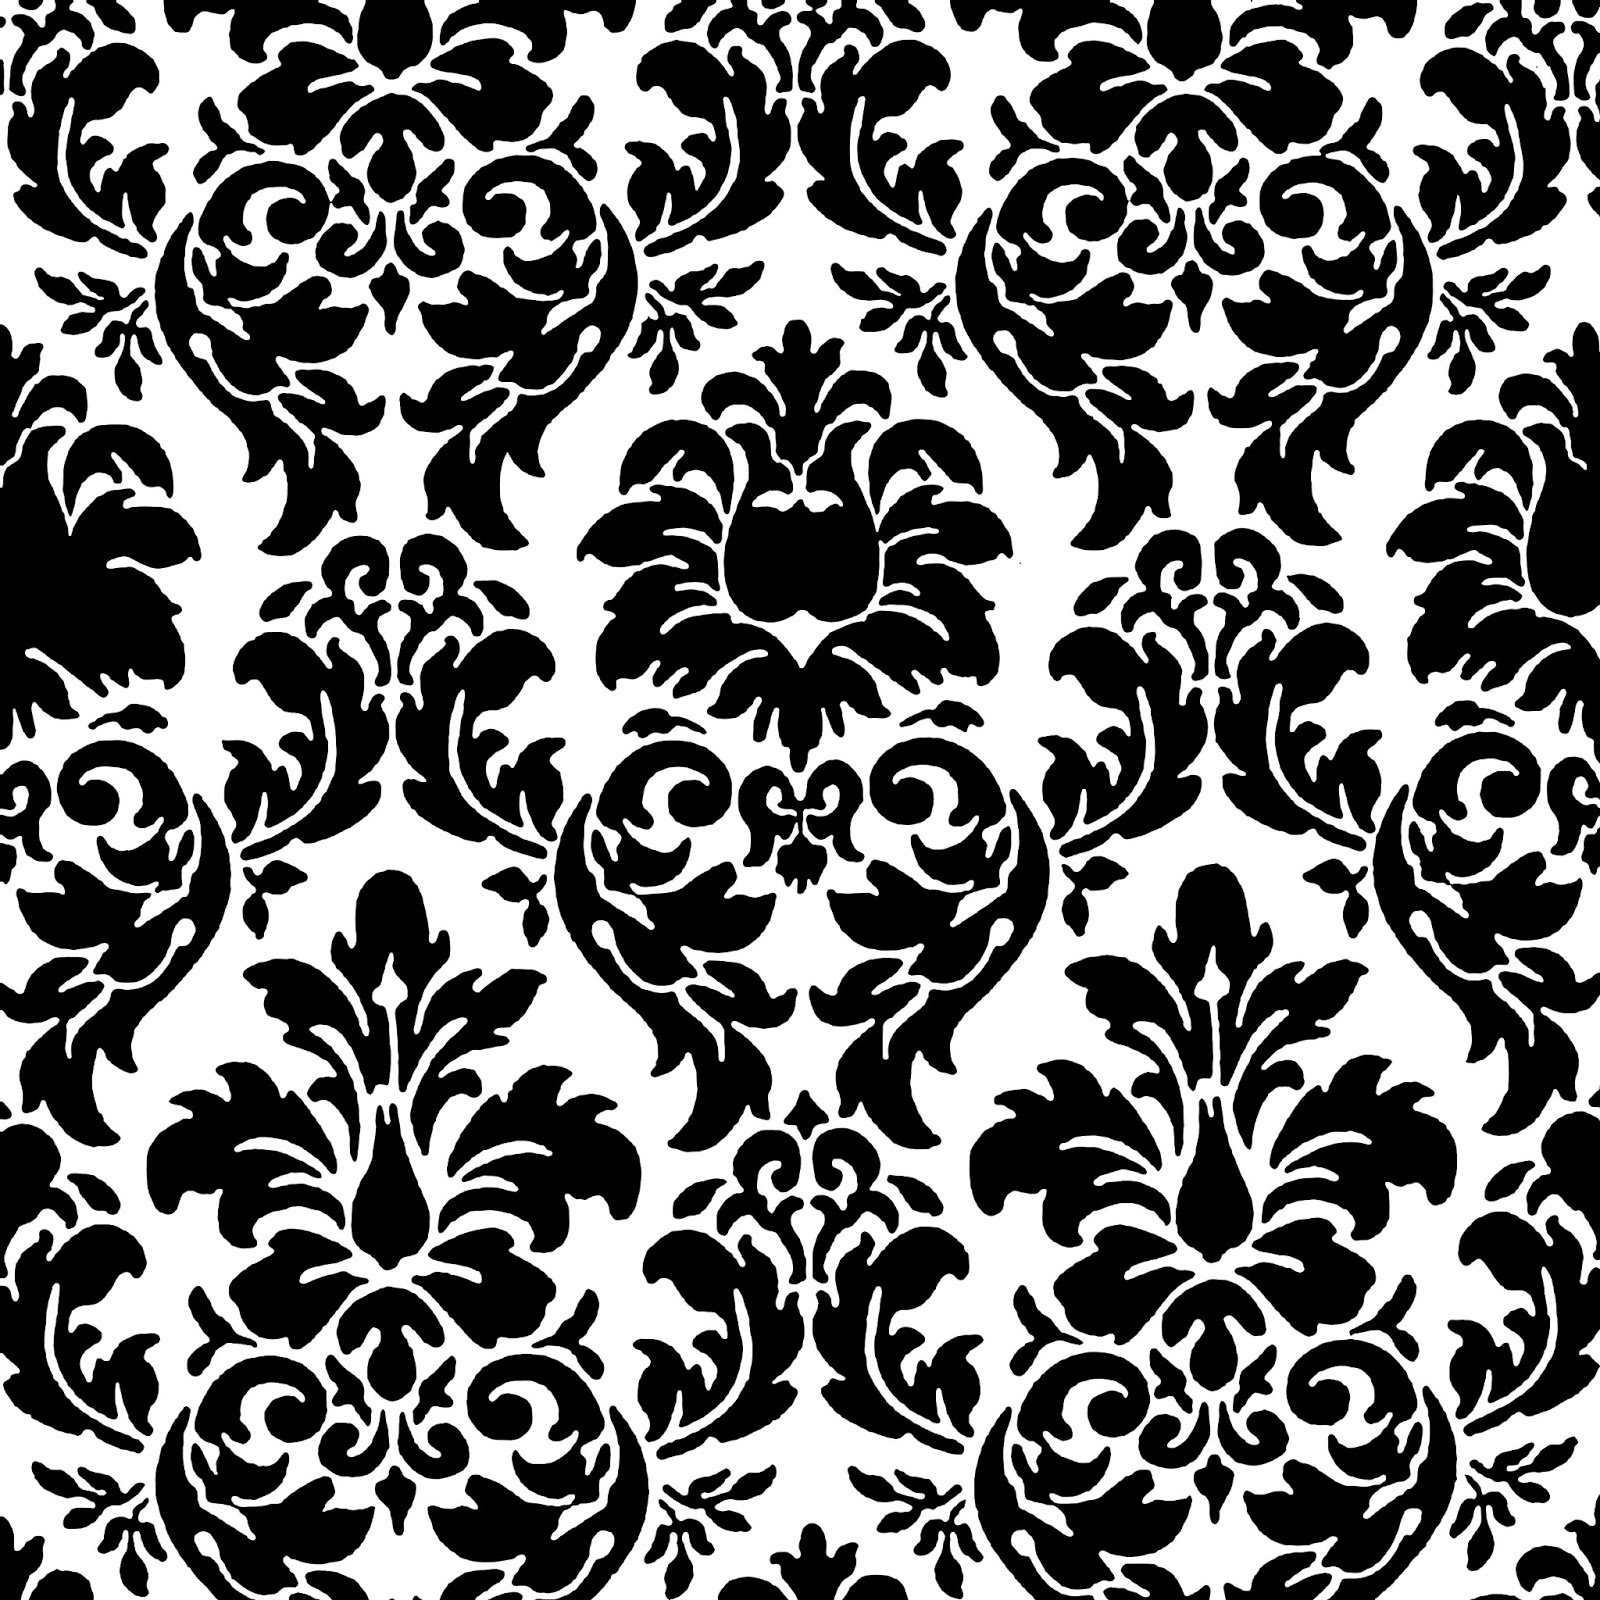 Cliparts zone . Free damask oards navy blue grey & white clipart